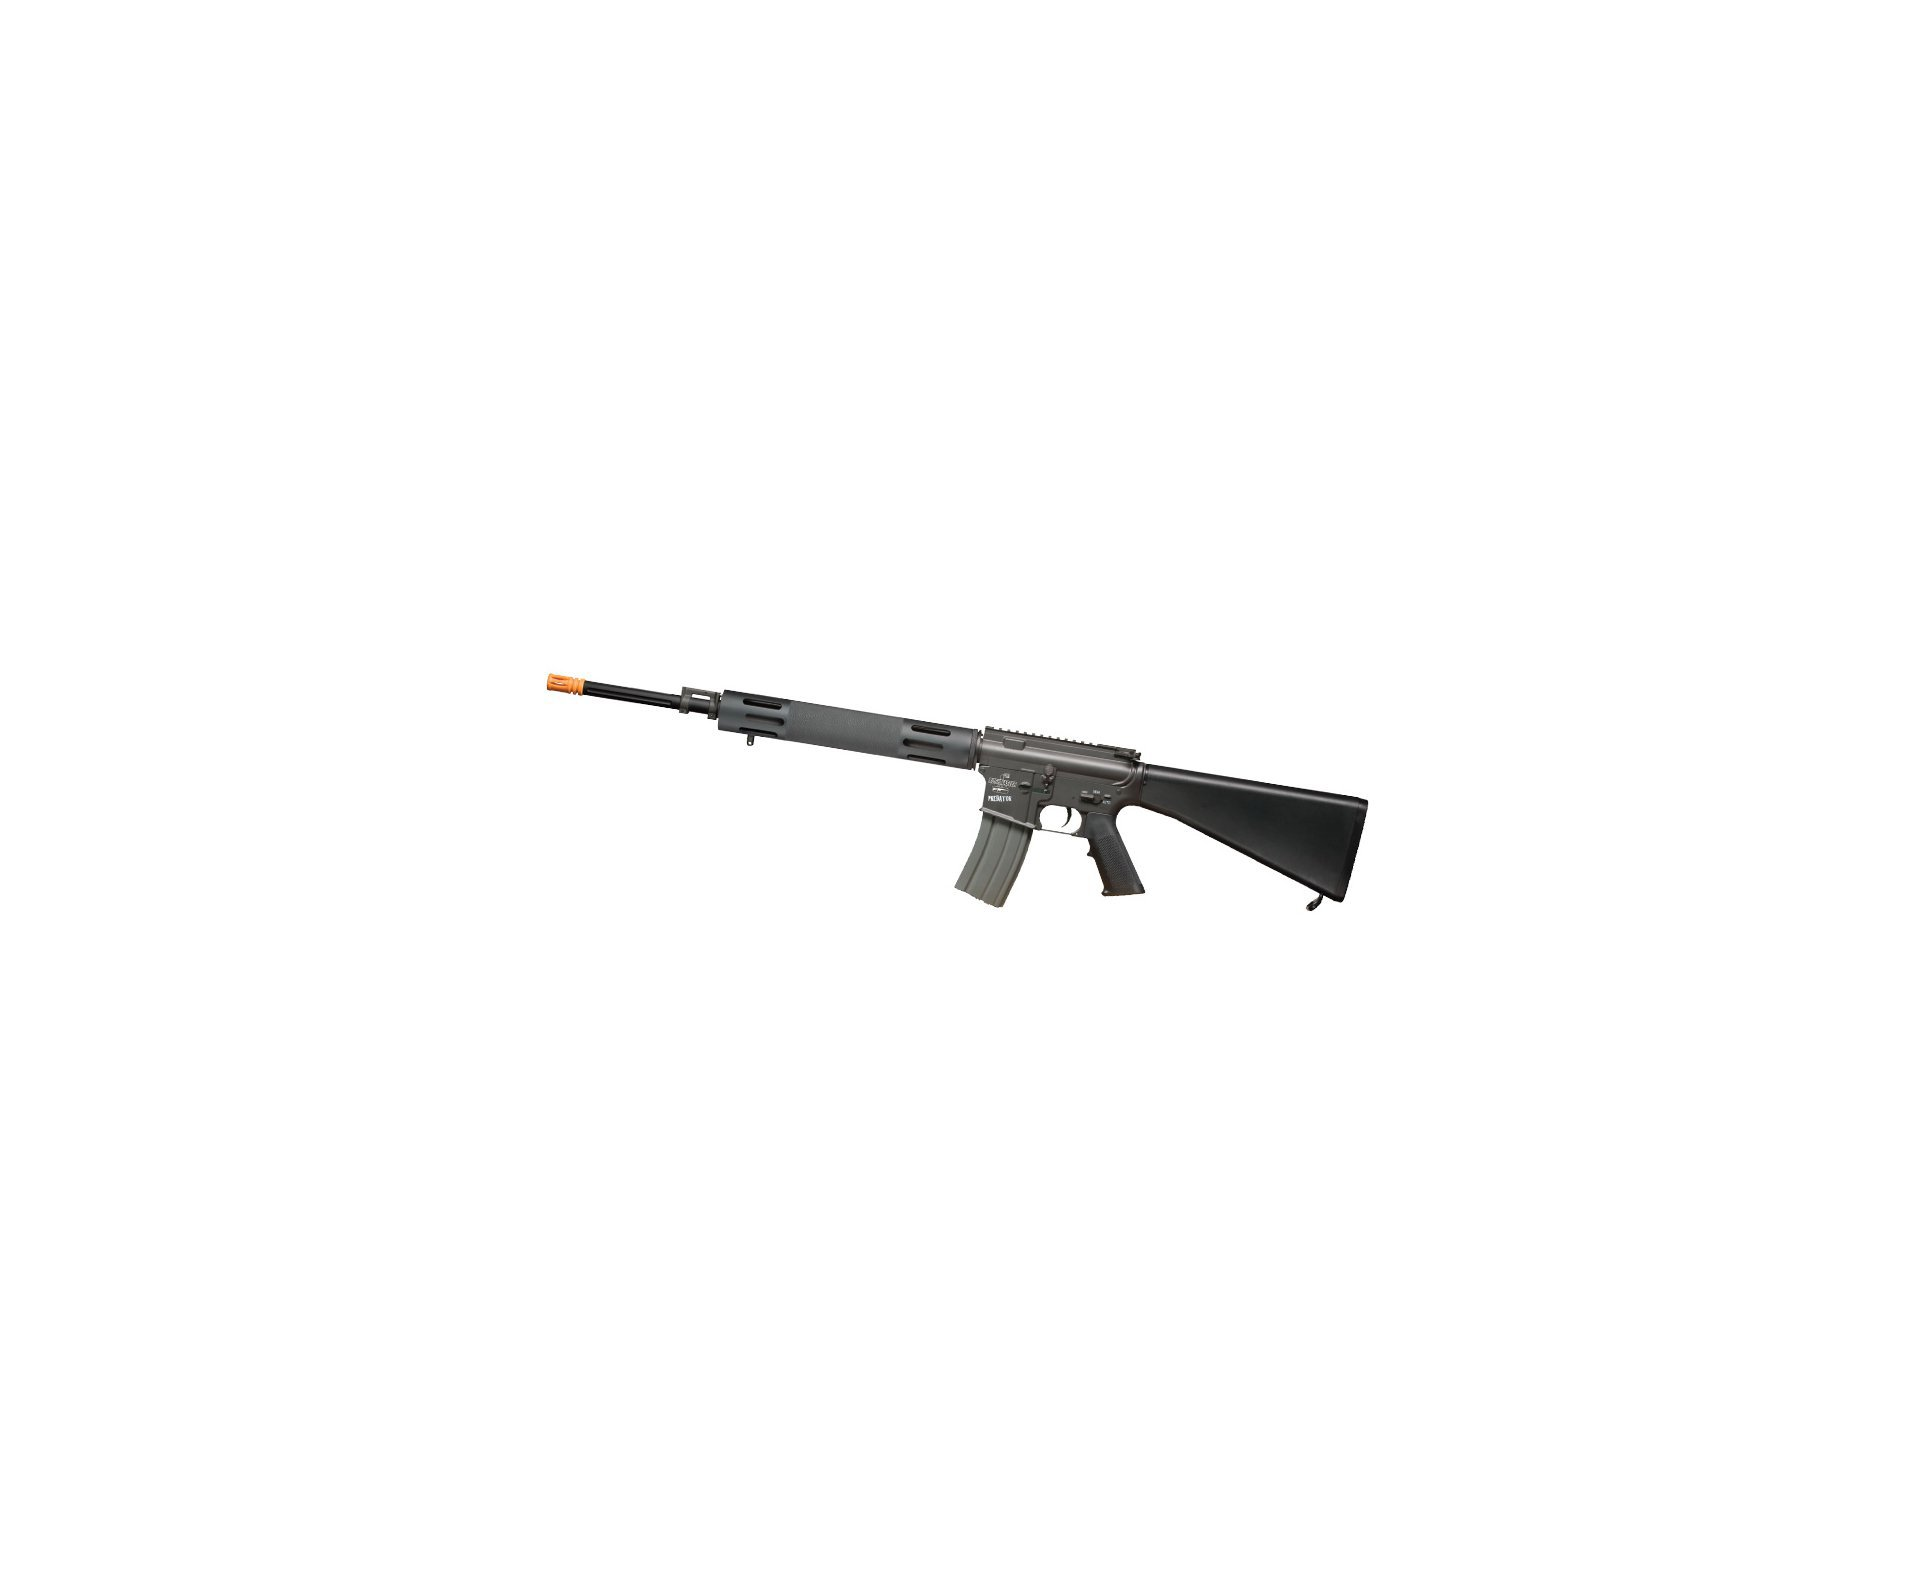 Rifle De Airsoft M16 Predator Elétrico - Calibre 6,0 Mm - Crosman - Bivolt